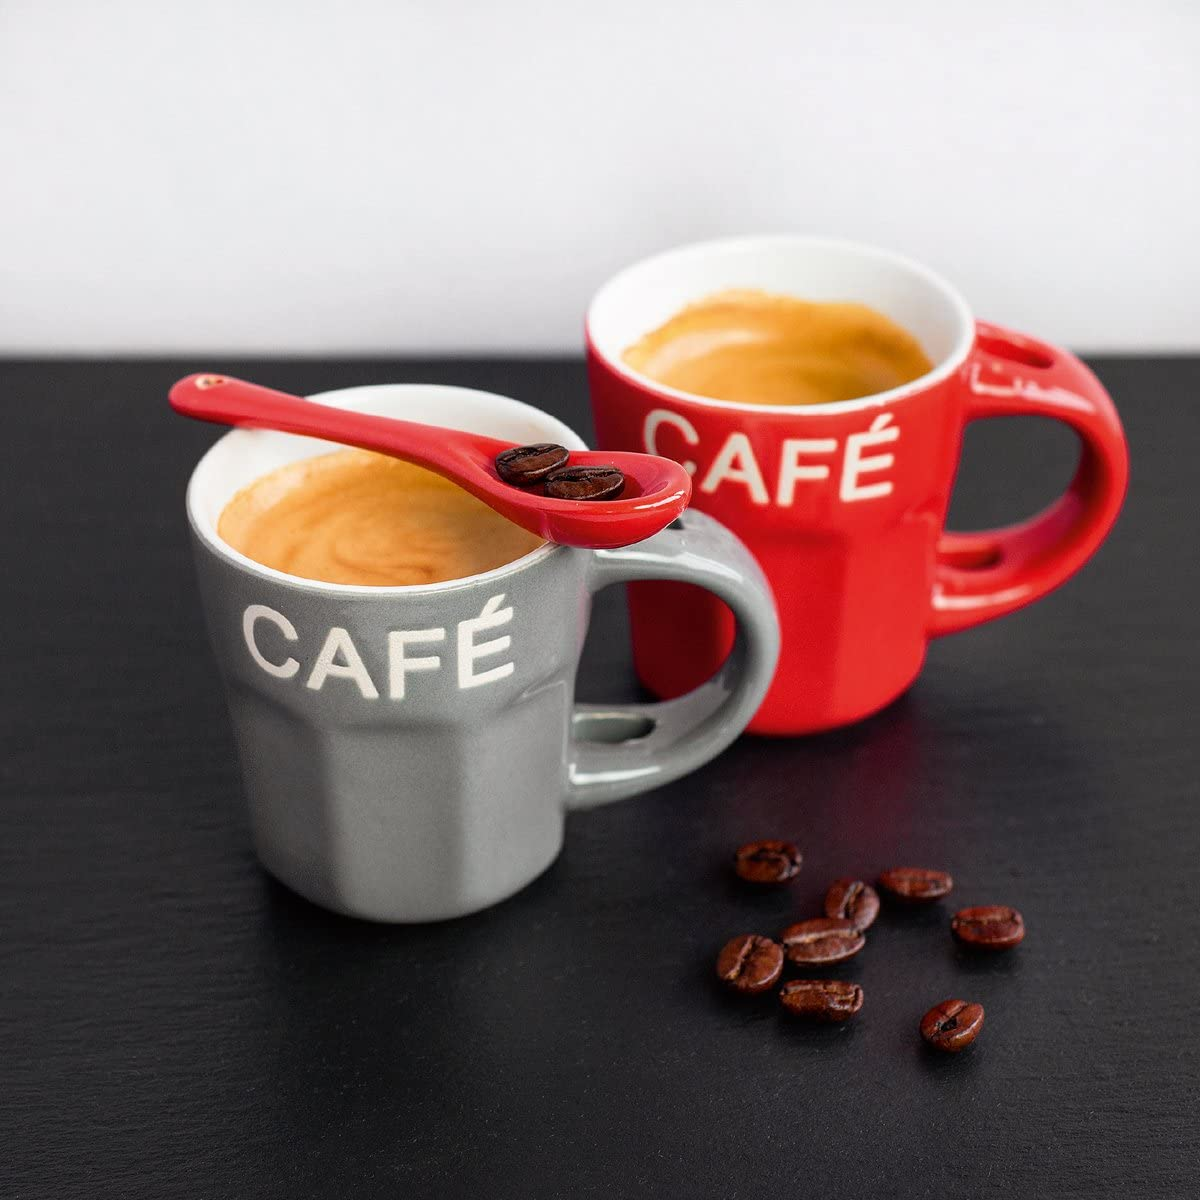 Eurographics Deco Glass BA20 Espresso Cups, 20 x 20 cm: Amazon